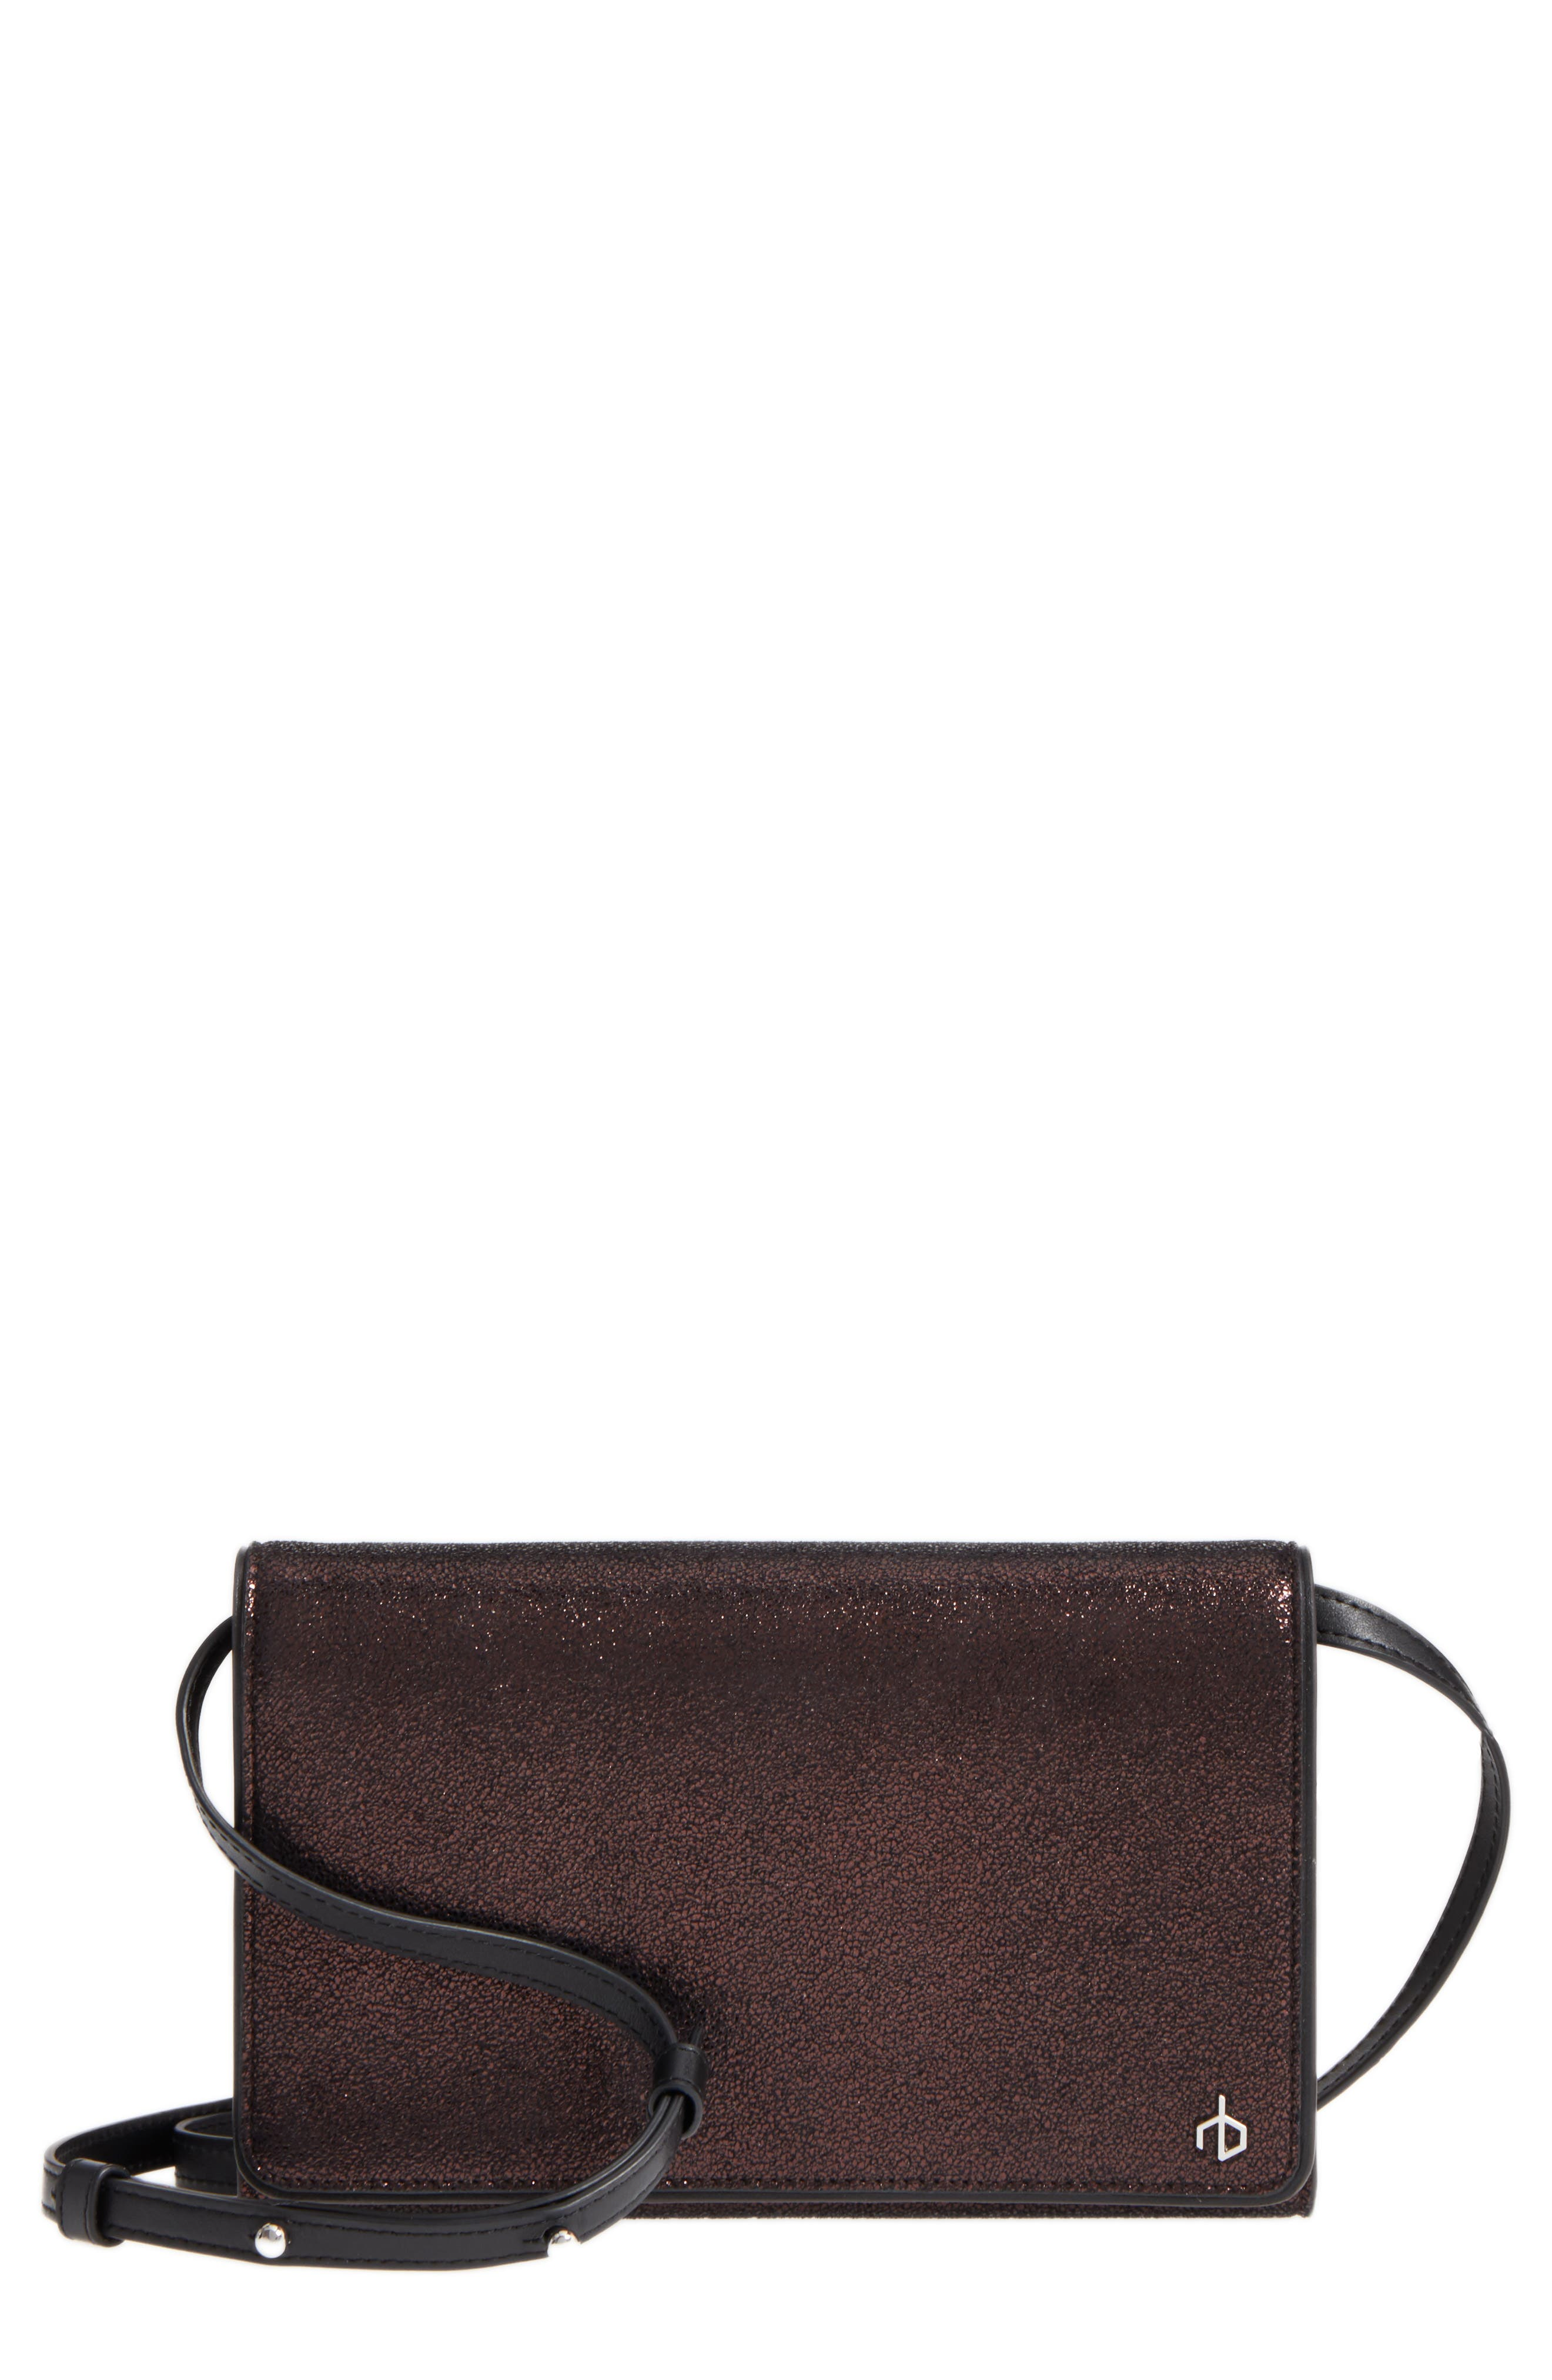 Metallic Leather Crossbody Wallet,                         Main,                         color, 220